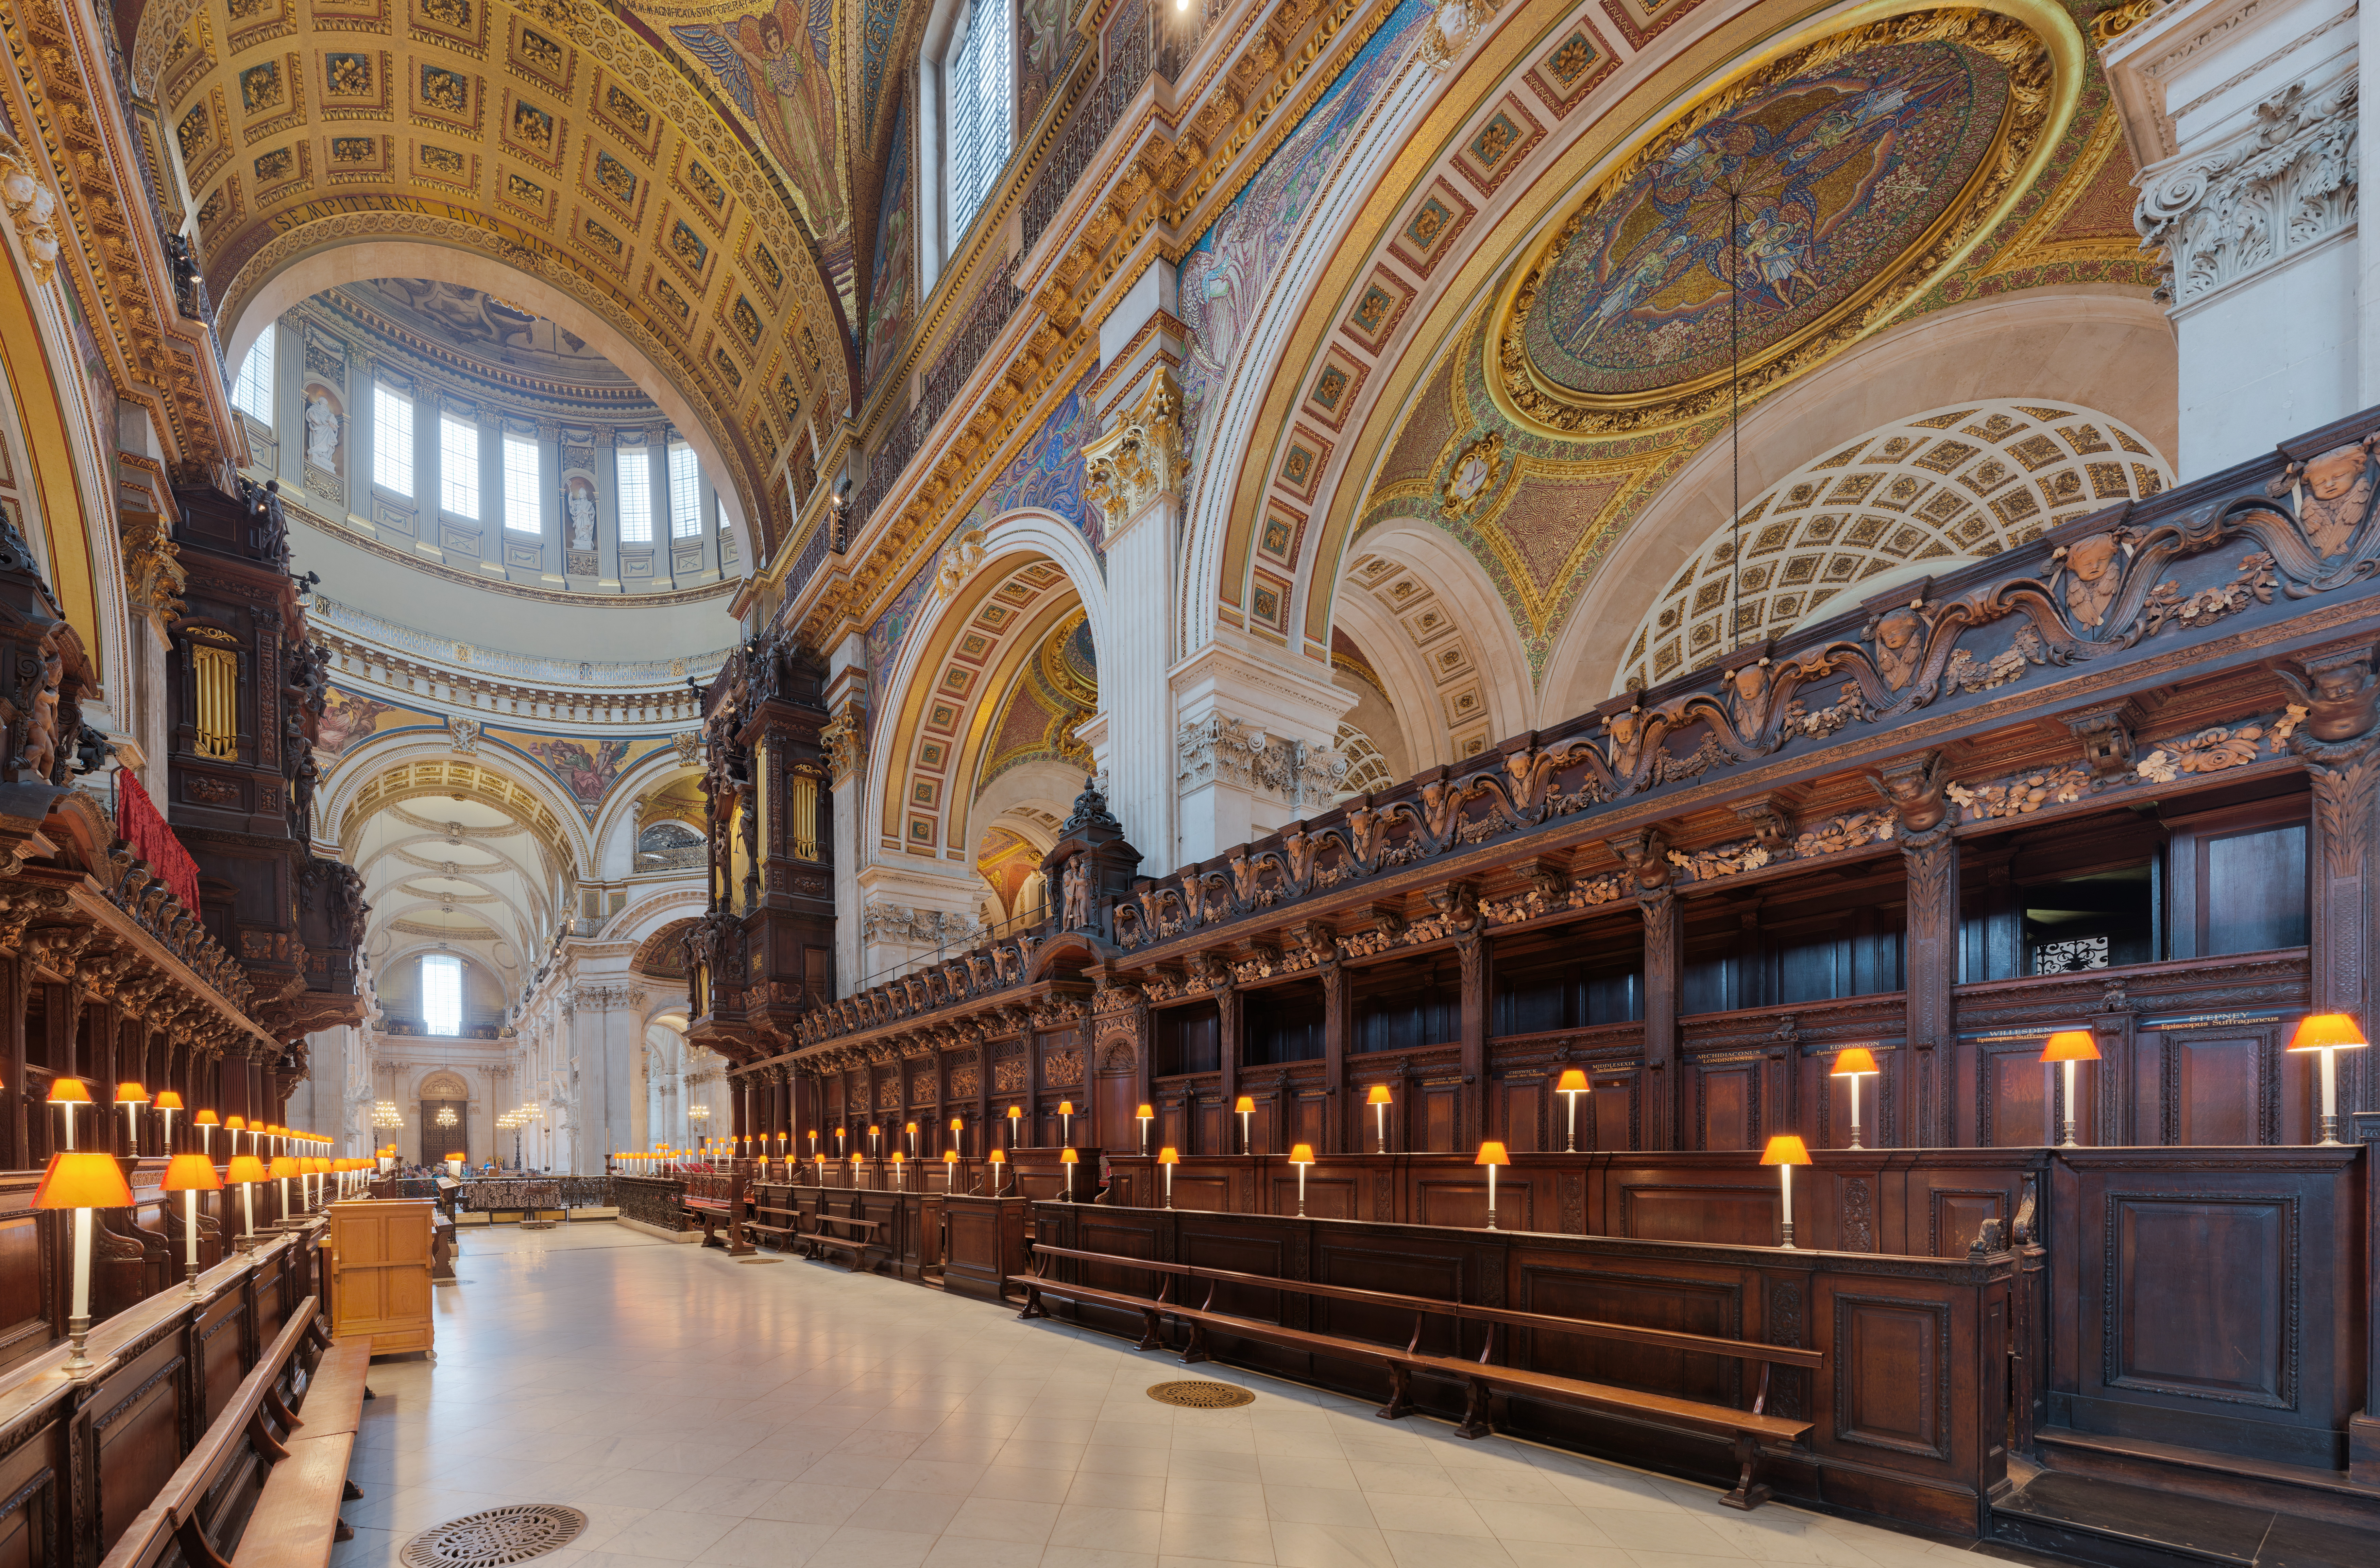 st pauls cathed tickets - HD1600×1054